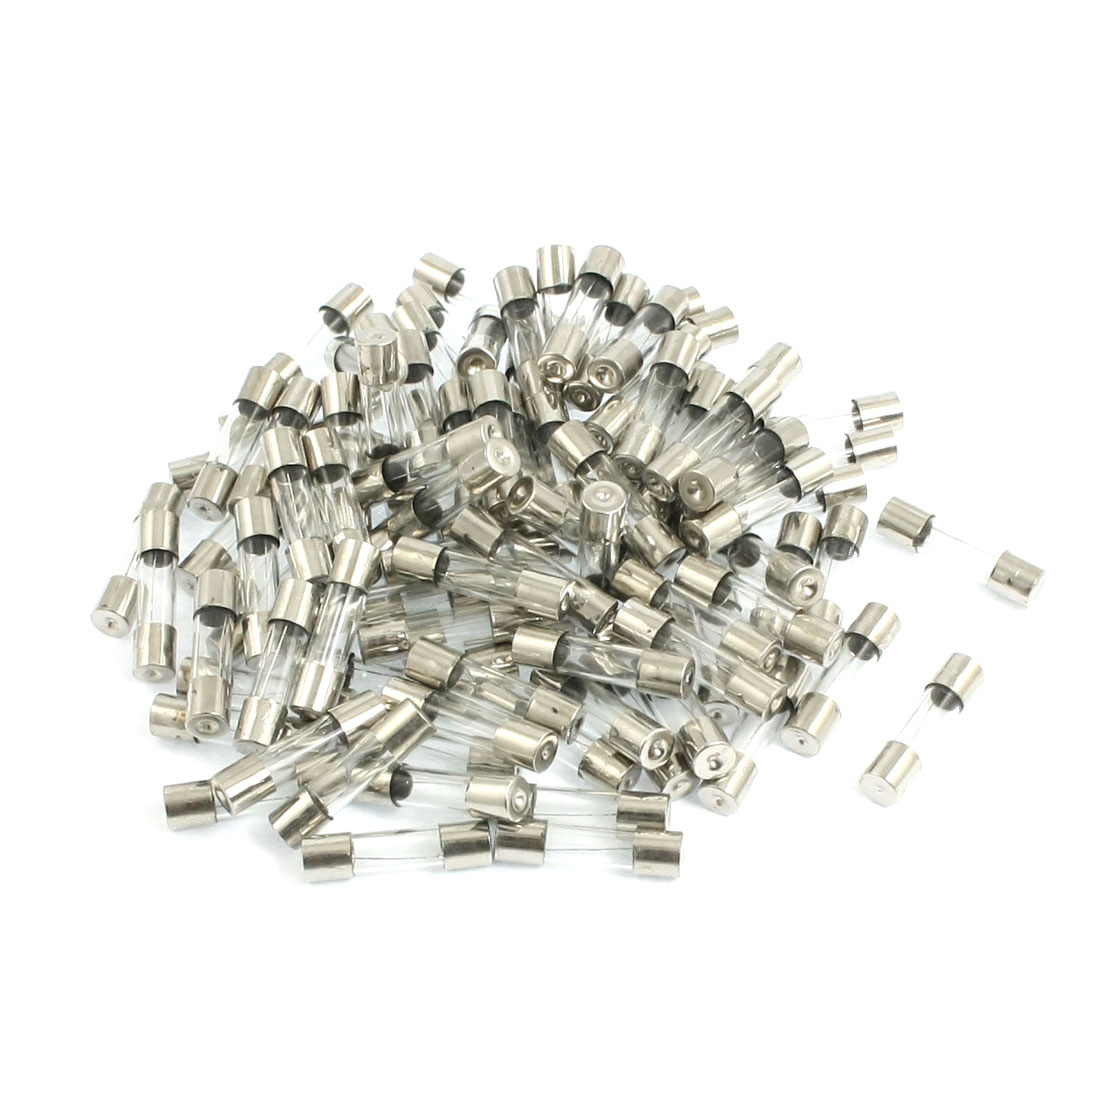 100 Pcs 250V 6A Low Breaking Capacity Fast Blow Glass Tube Fuses 5mm x 20mm